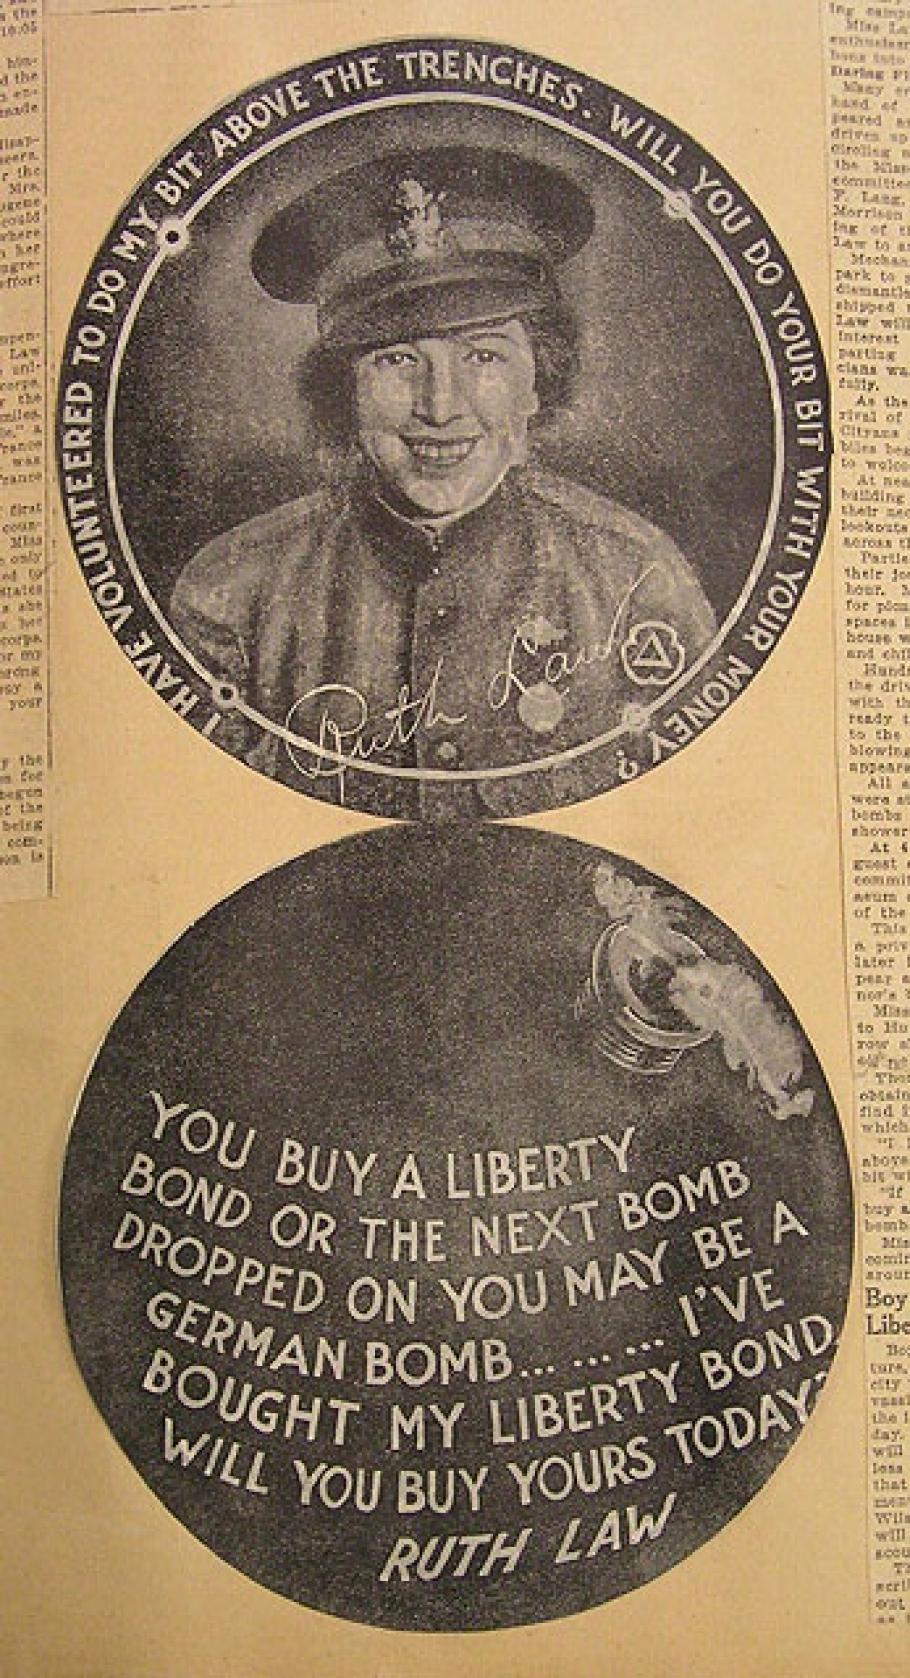 Ruth Law Liberty Bond